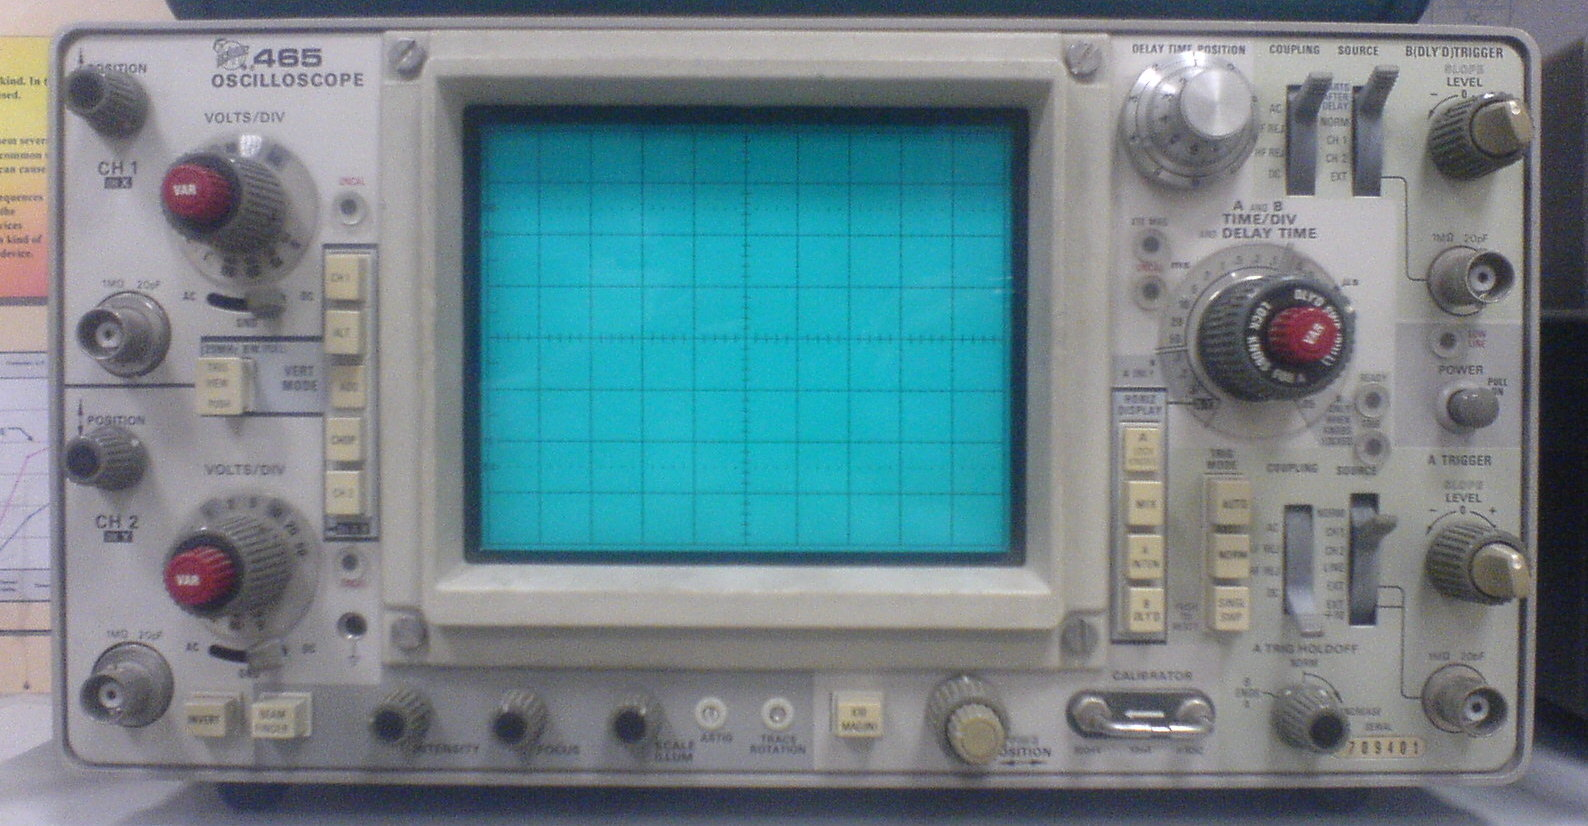 Tektronix 465 O-Scope, commonly available online for a fair price